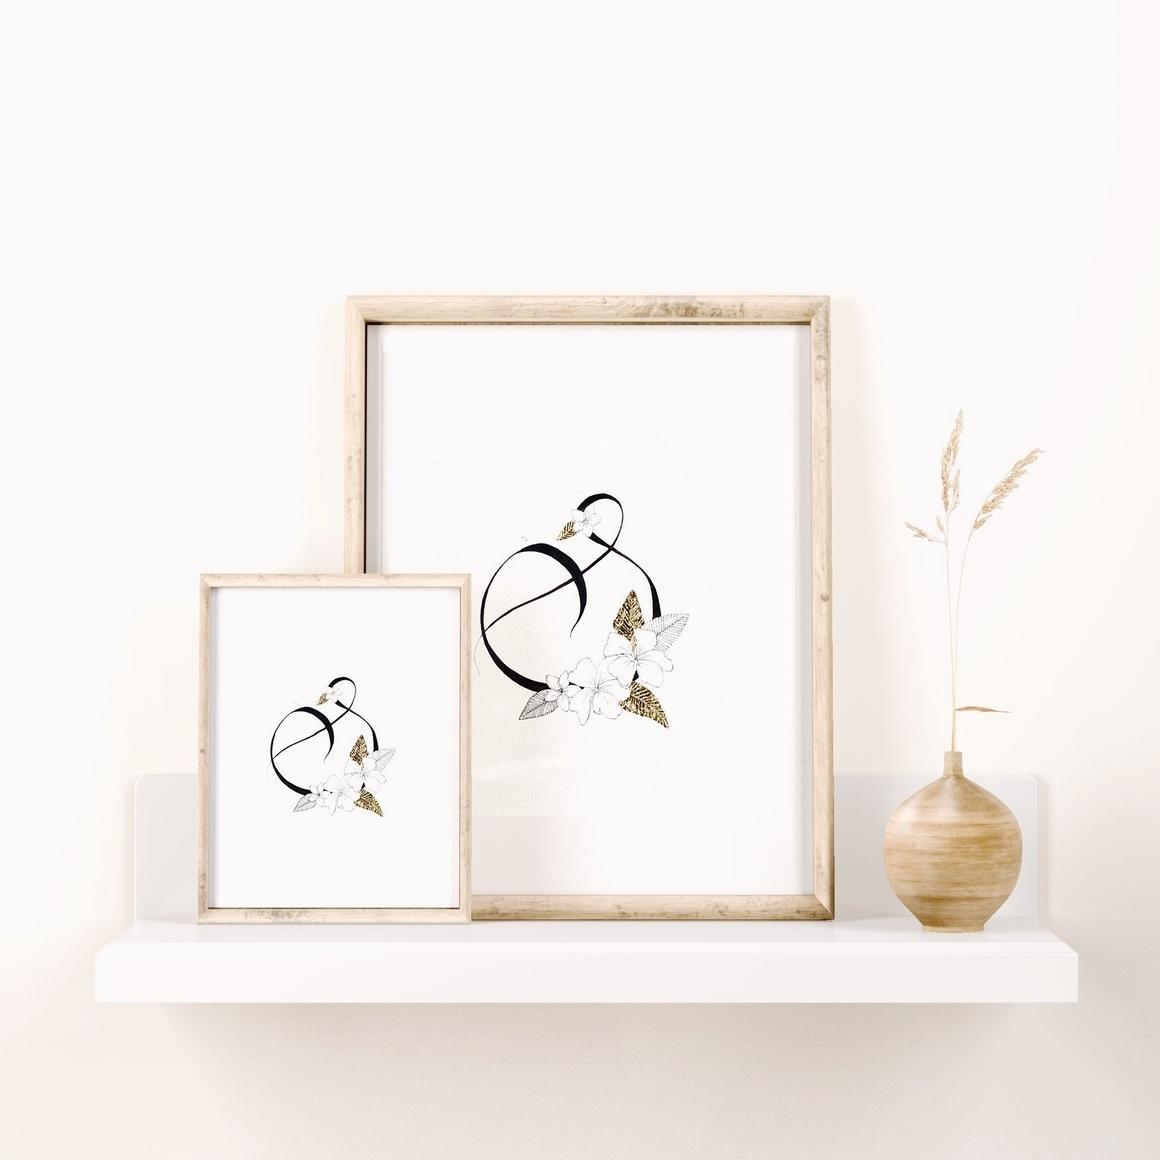 Lettering S With Light Plumeria - B & W Art Print With Gold Flake   Trada Marketplace